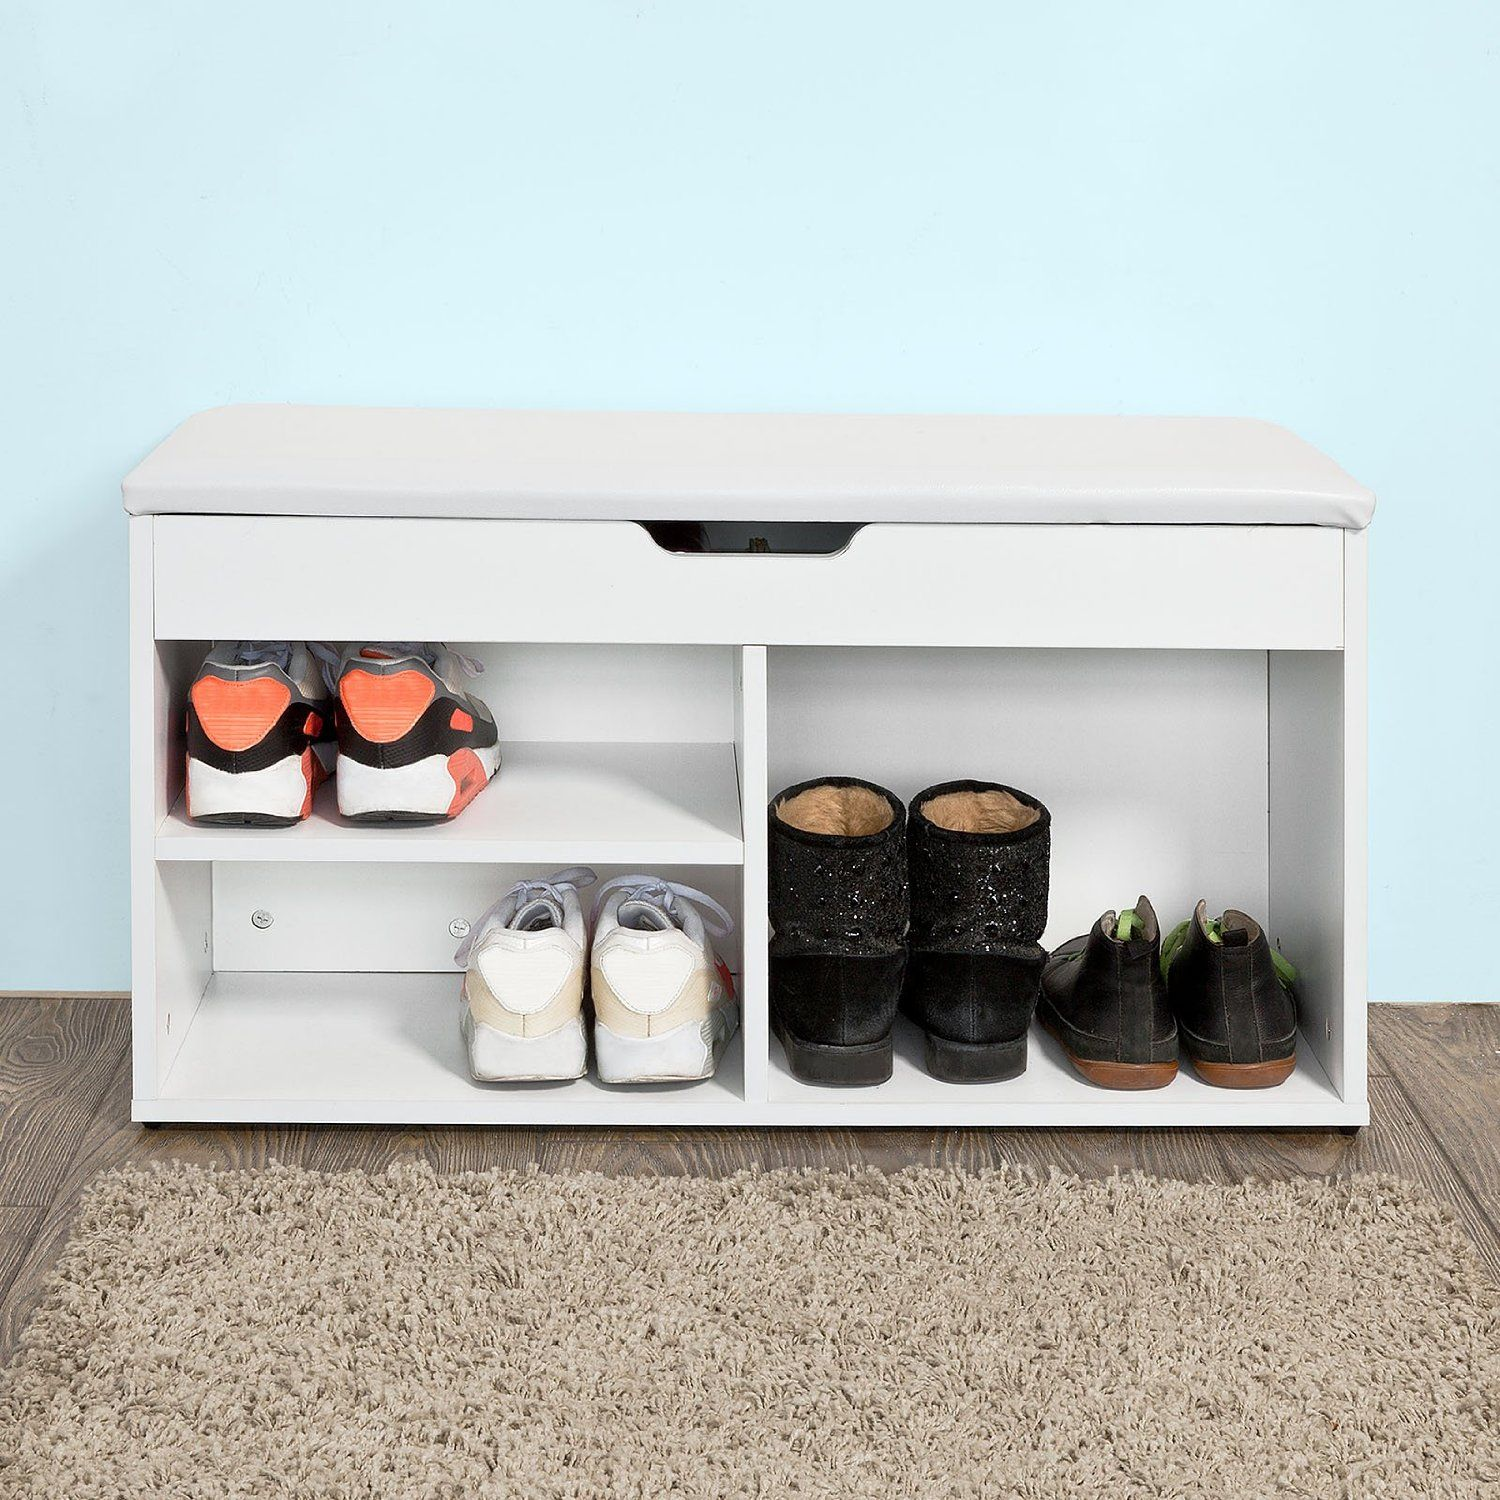 sobuy fsr27 w banc de rangement chaussures bottes avec. Black Bedroom Furniture Sets. Home Design Ideas